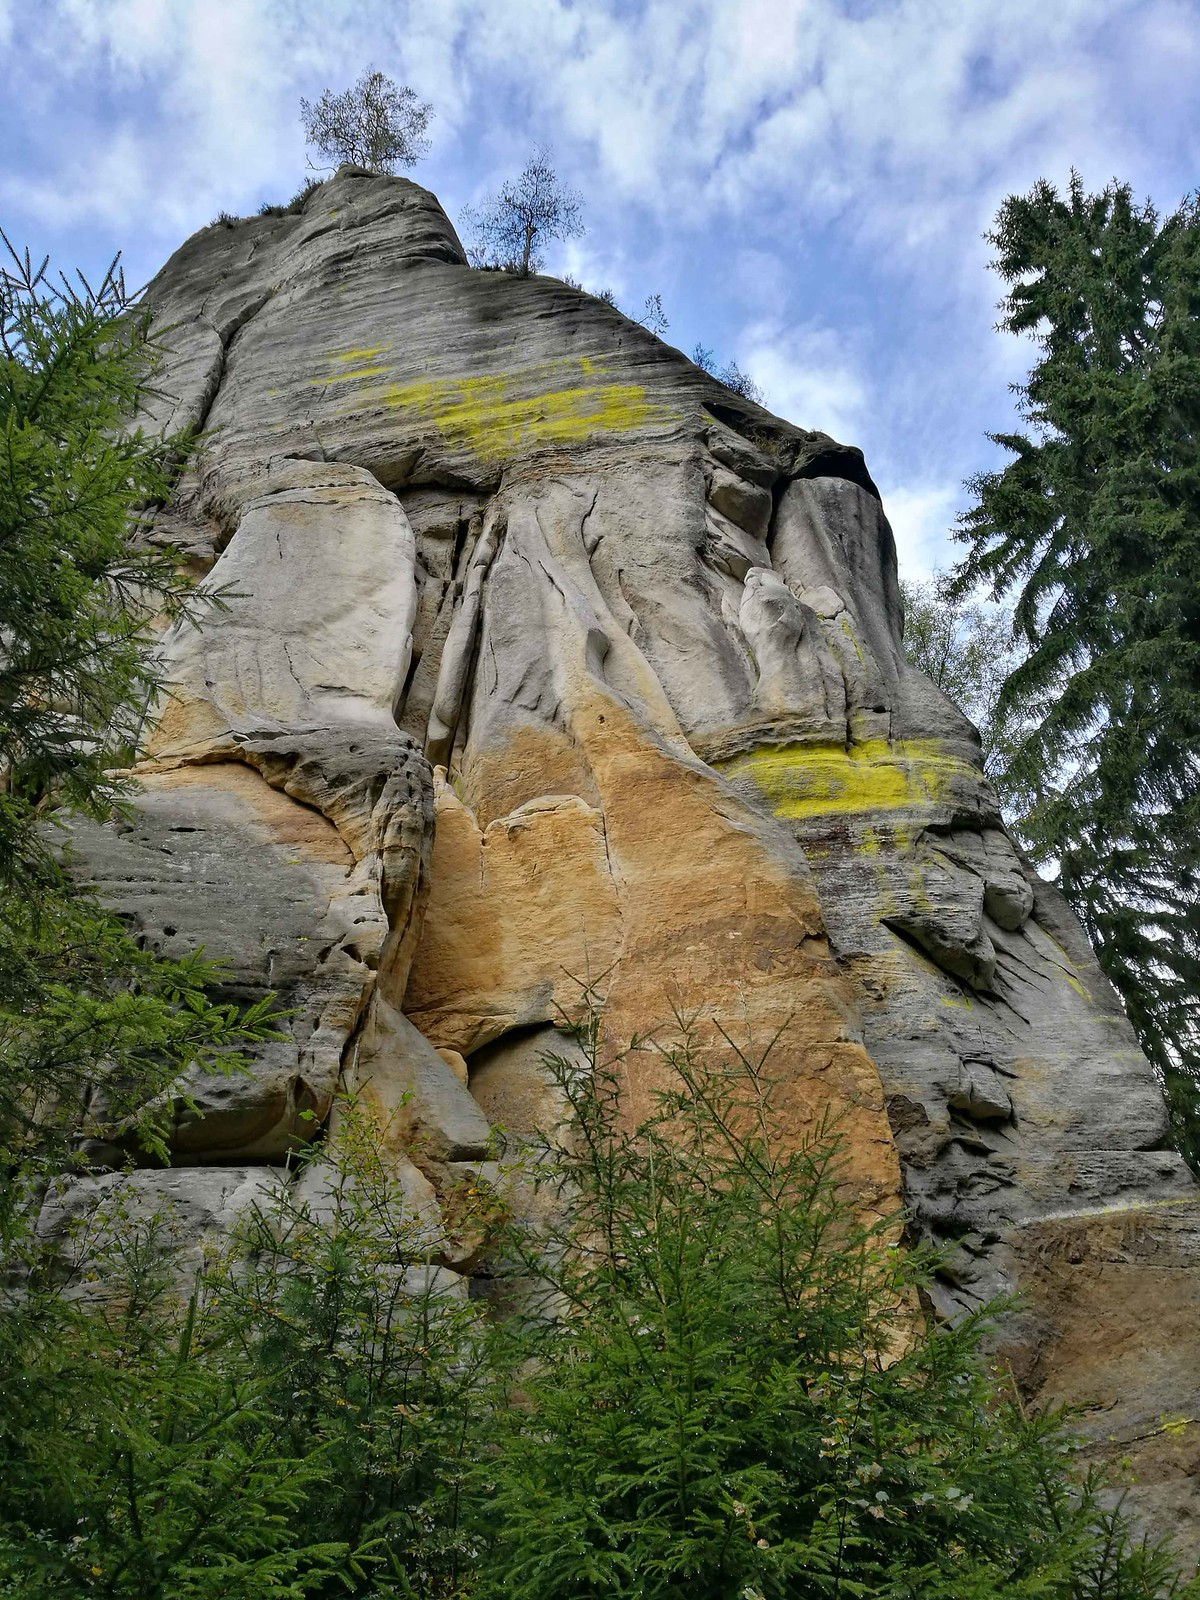 Trekking in the Czech Rock Towns